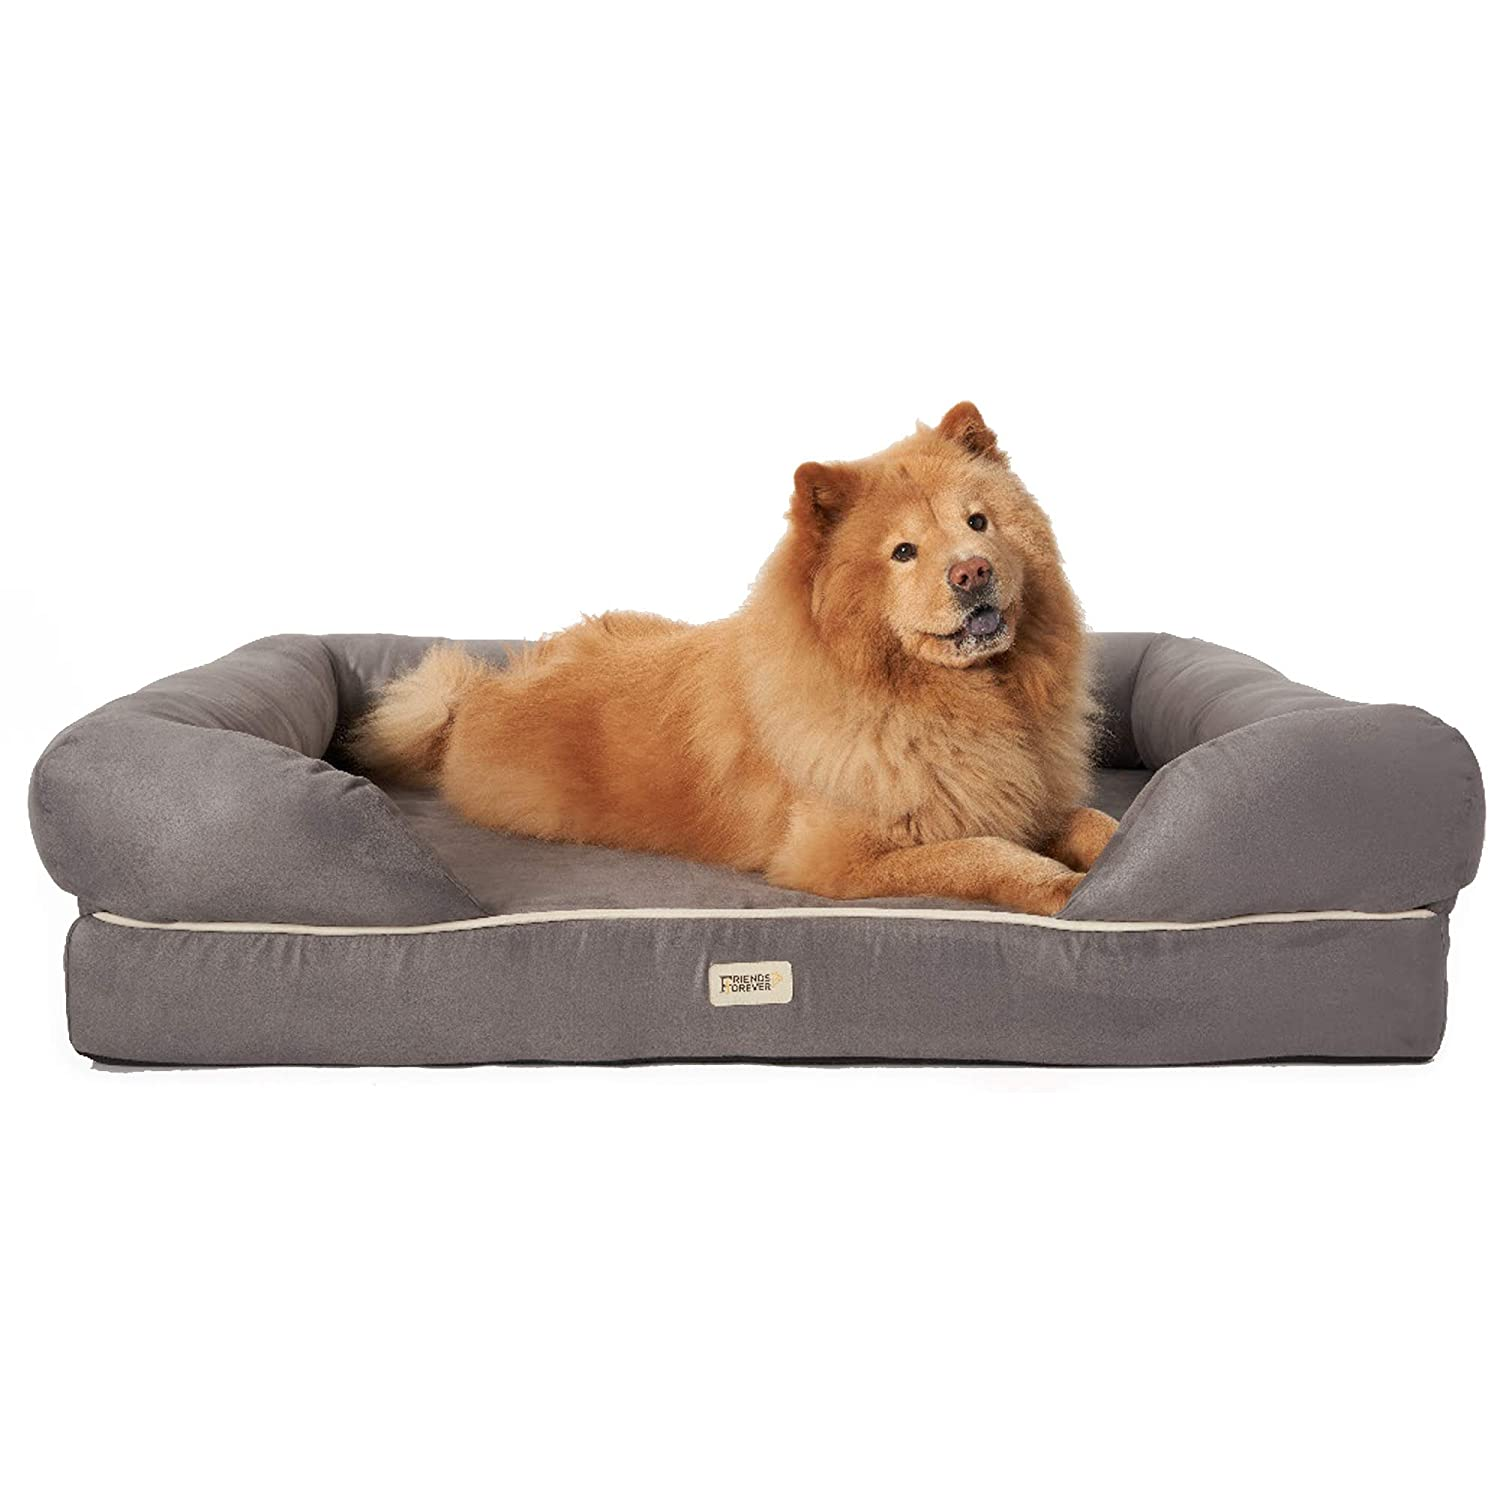 0a484e07552 Amazon.com   Friends Forever Orthopedic Dog Bed Lounge Sofa Removable Cover  100% Suede 4